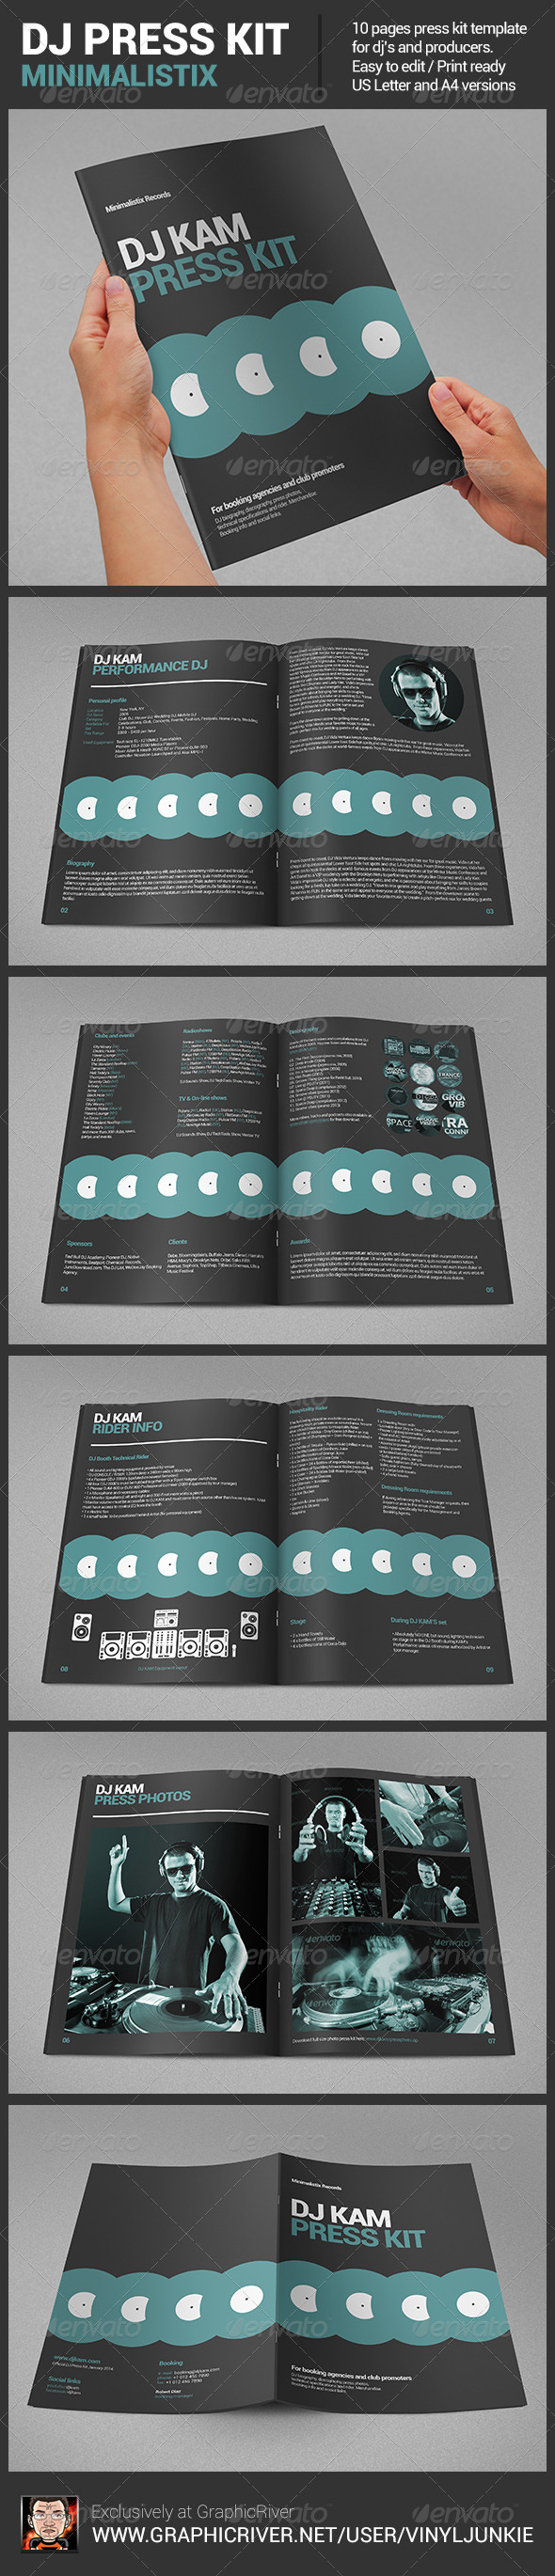 Minimalistix dj press kit graphicriver for Dj press kit template free